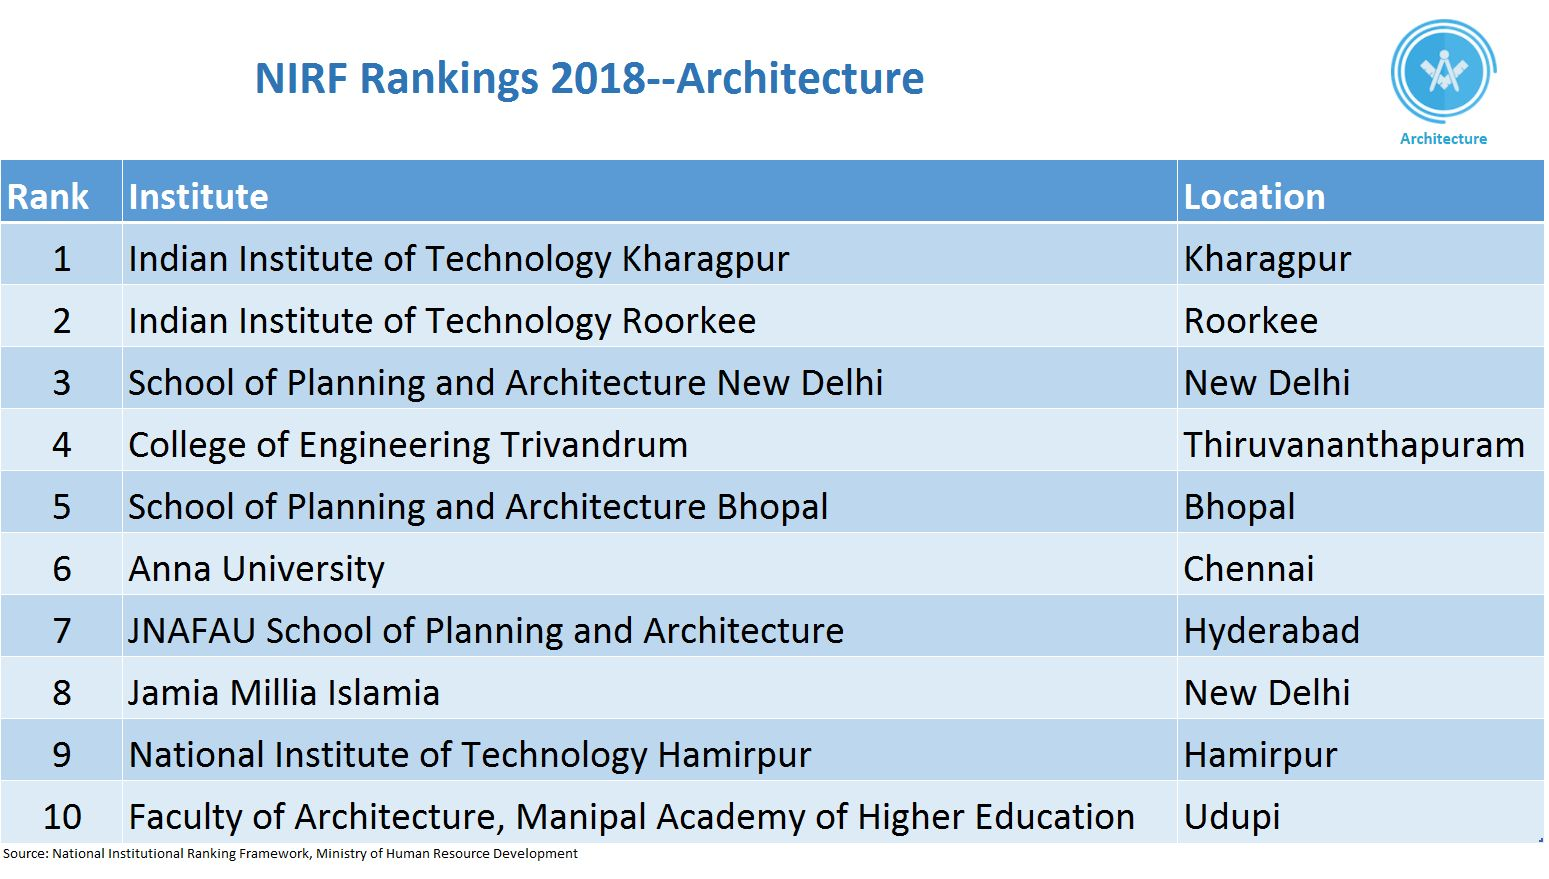 In the area of architecture, IIT Kharagpur and IIT Roorkee took the top two positiions. Among the National Institutes of Technology, NIT Hamirpur featured among the top ten. (Data infographics by Ritesh Presswala)